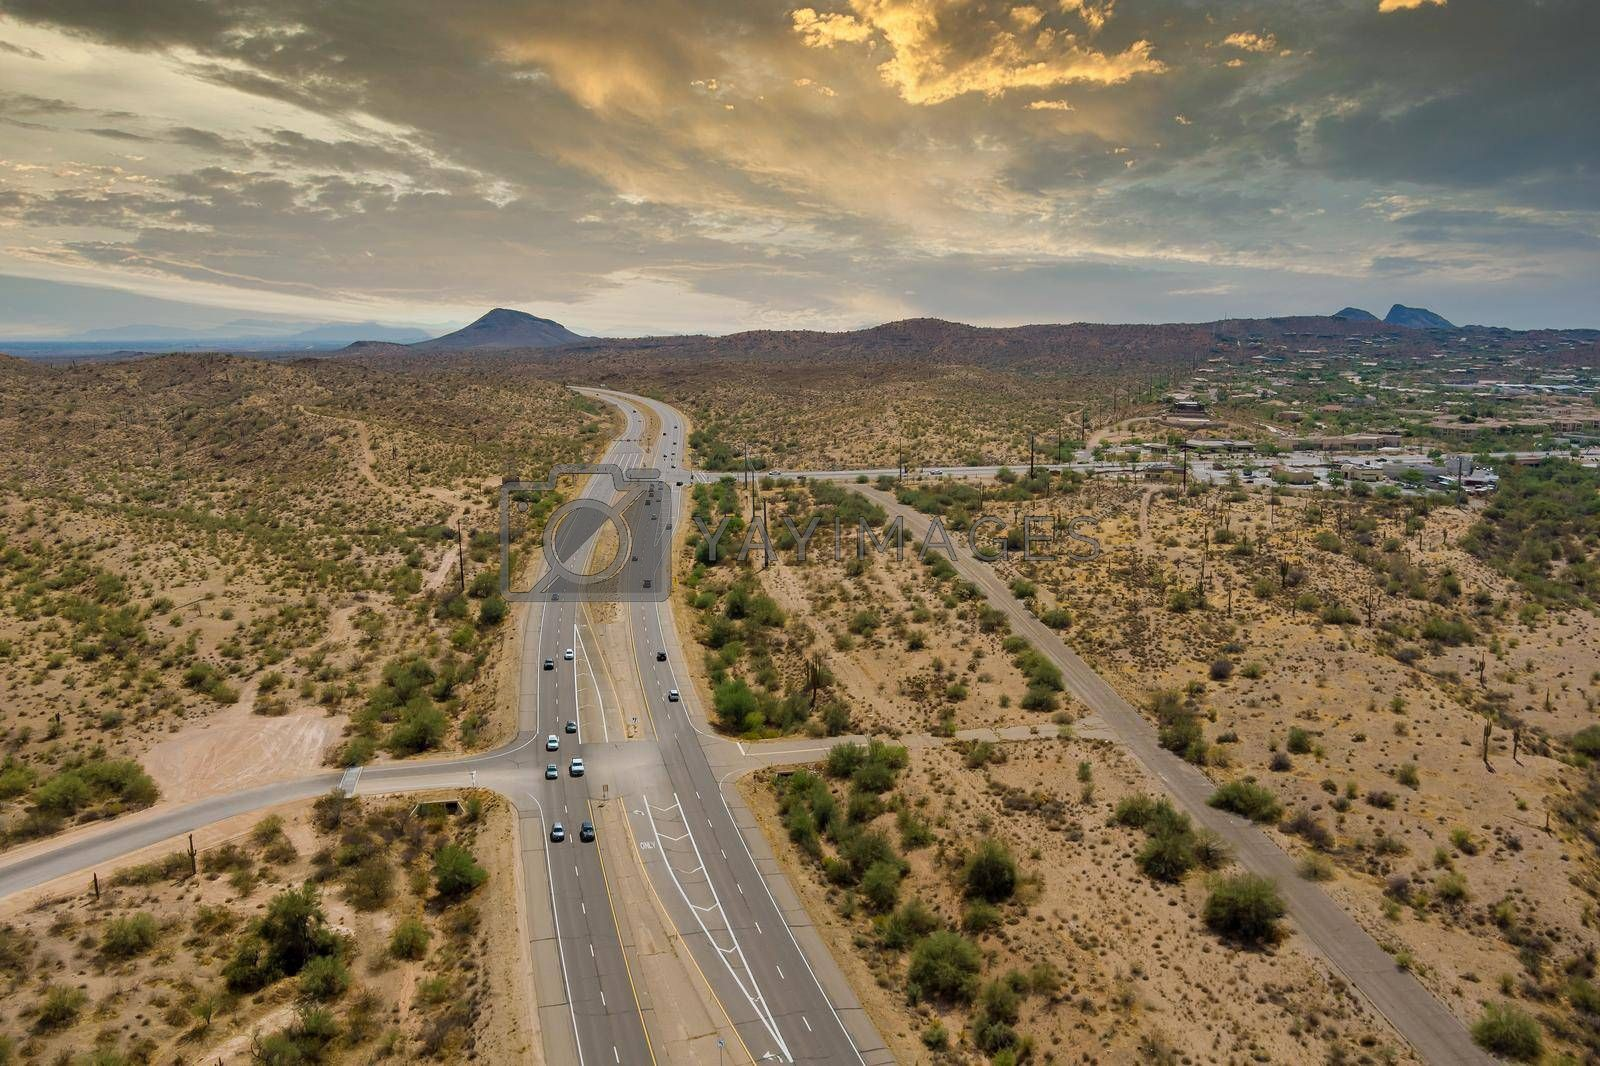 Royalty free image of Aerial view highway across the arid desert Arizona mountains adventure traveling desert road near Fountain Hills small town residential district by ungvar